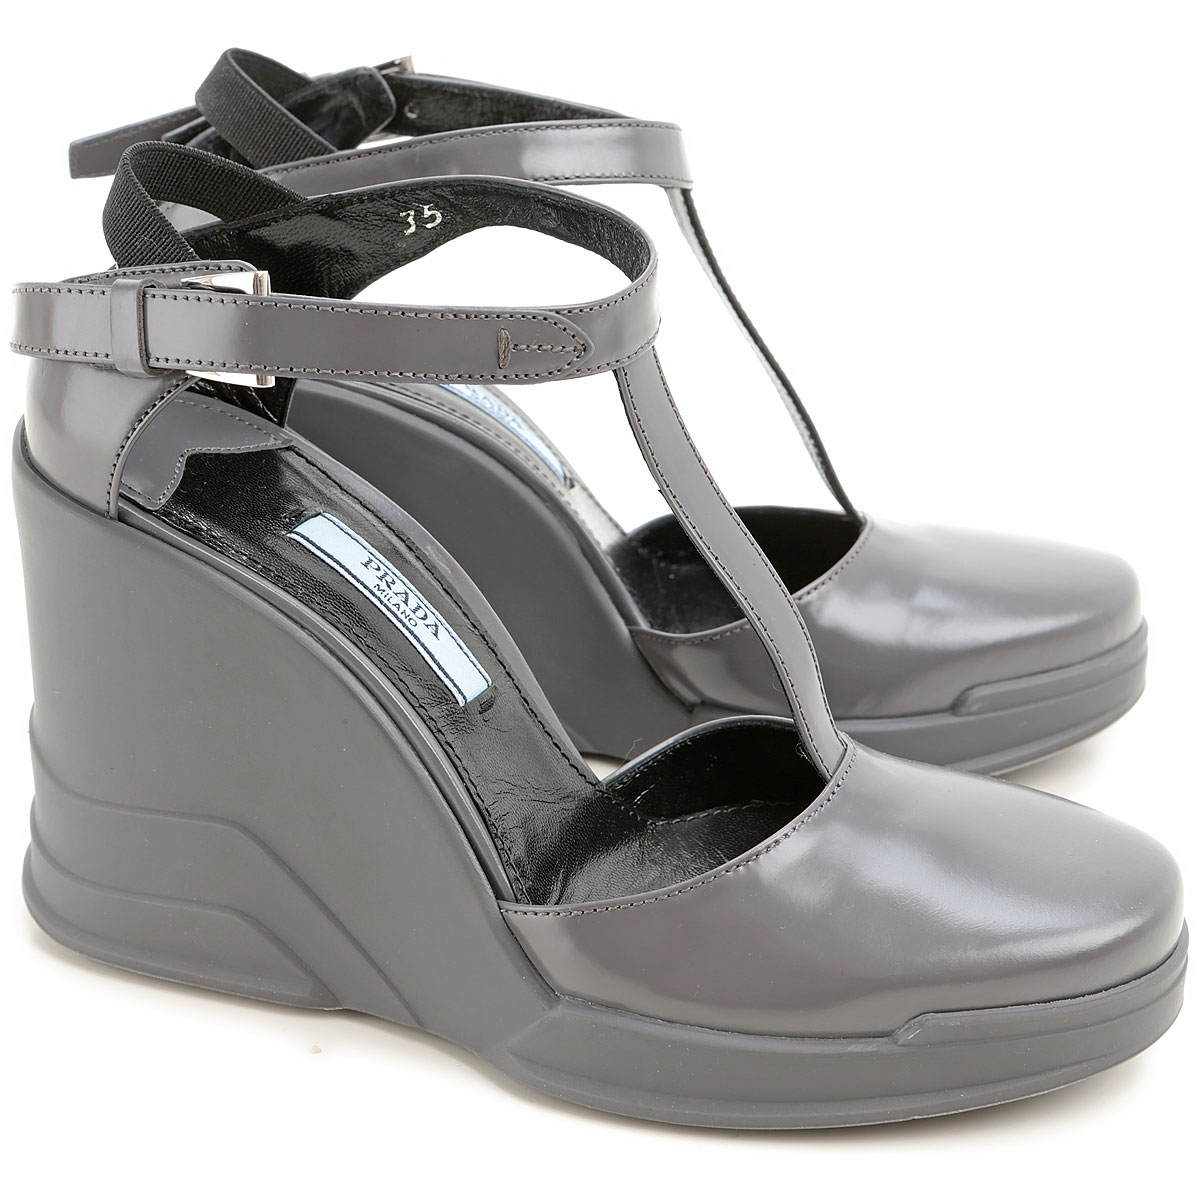 Prada Wedges for Women On Sale in Outlet Grey - GOOFASH